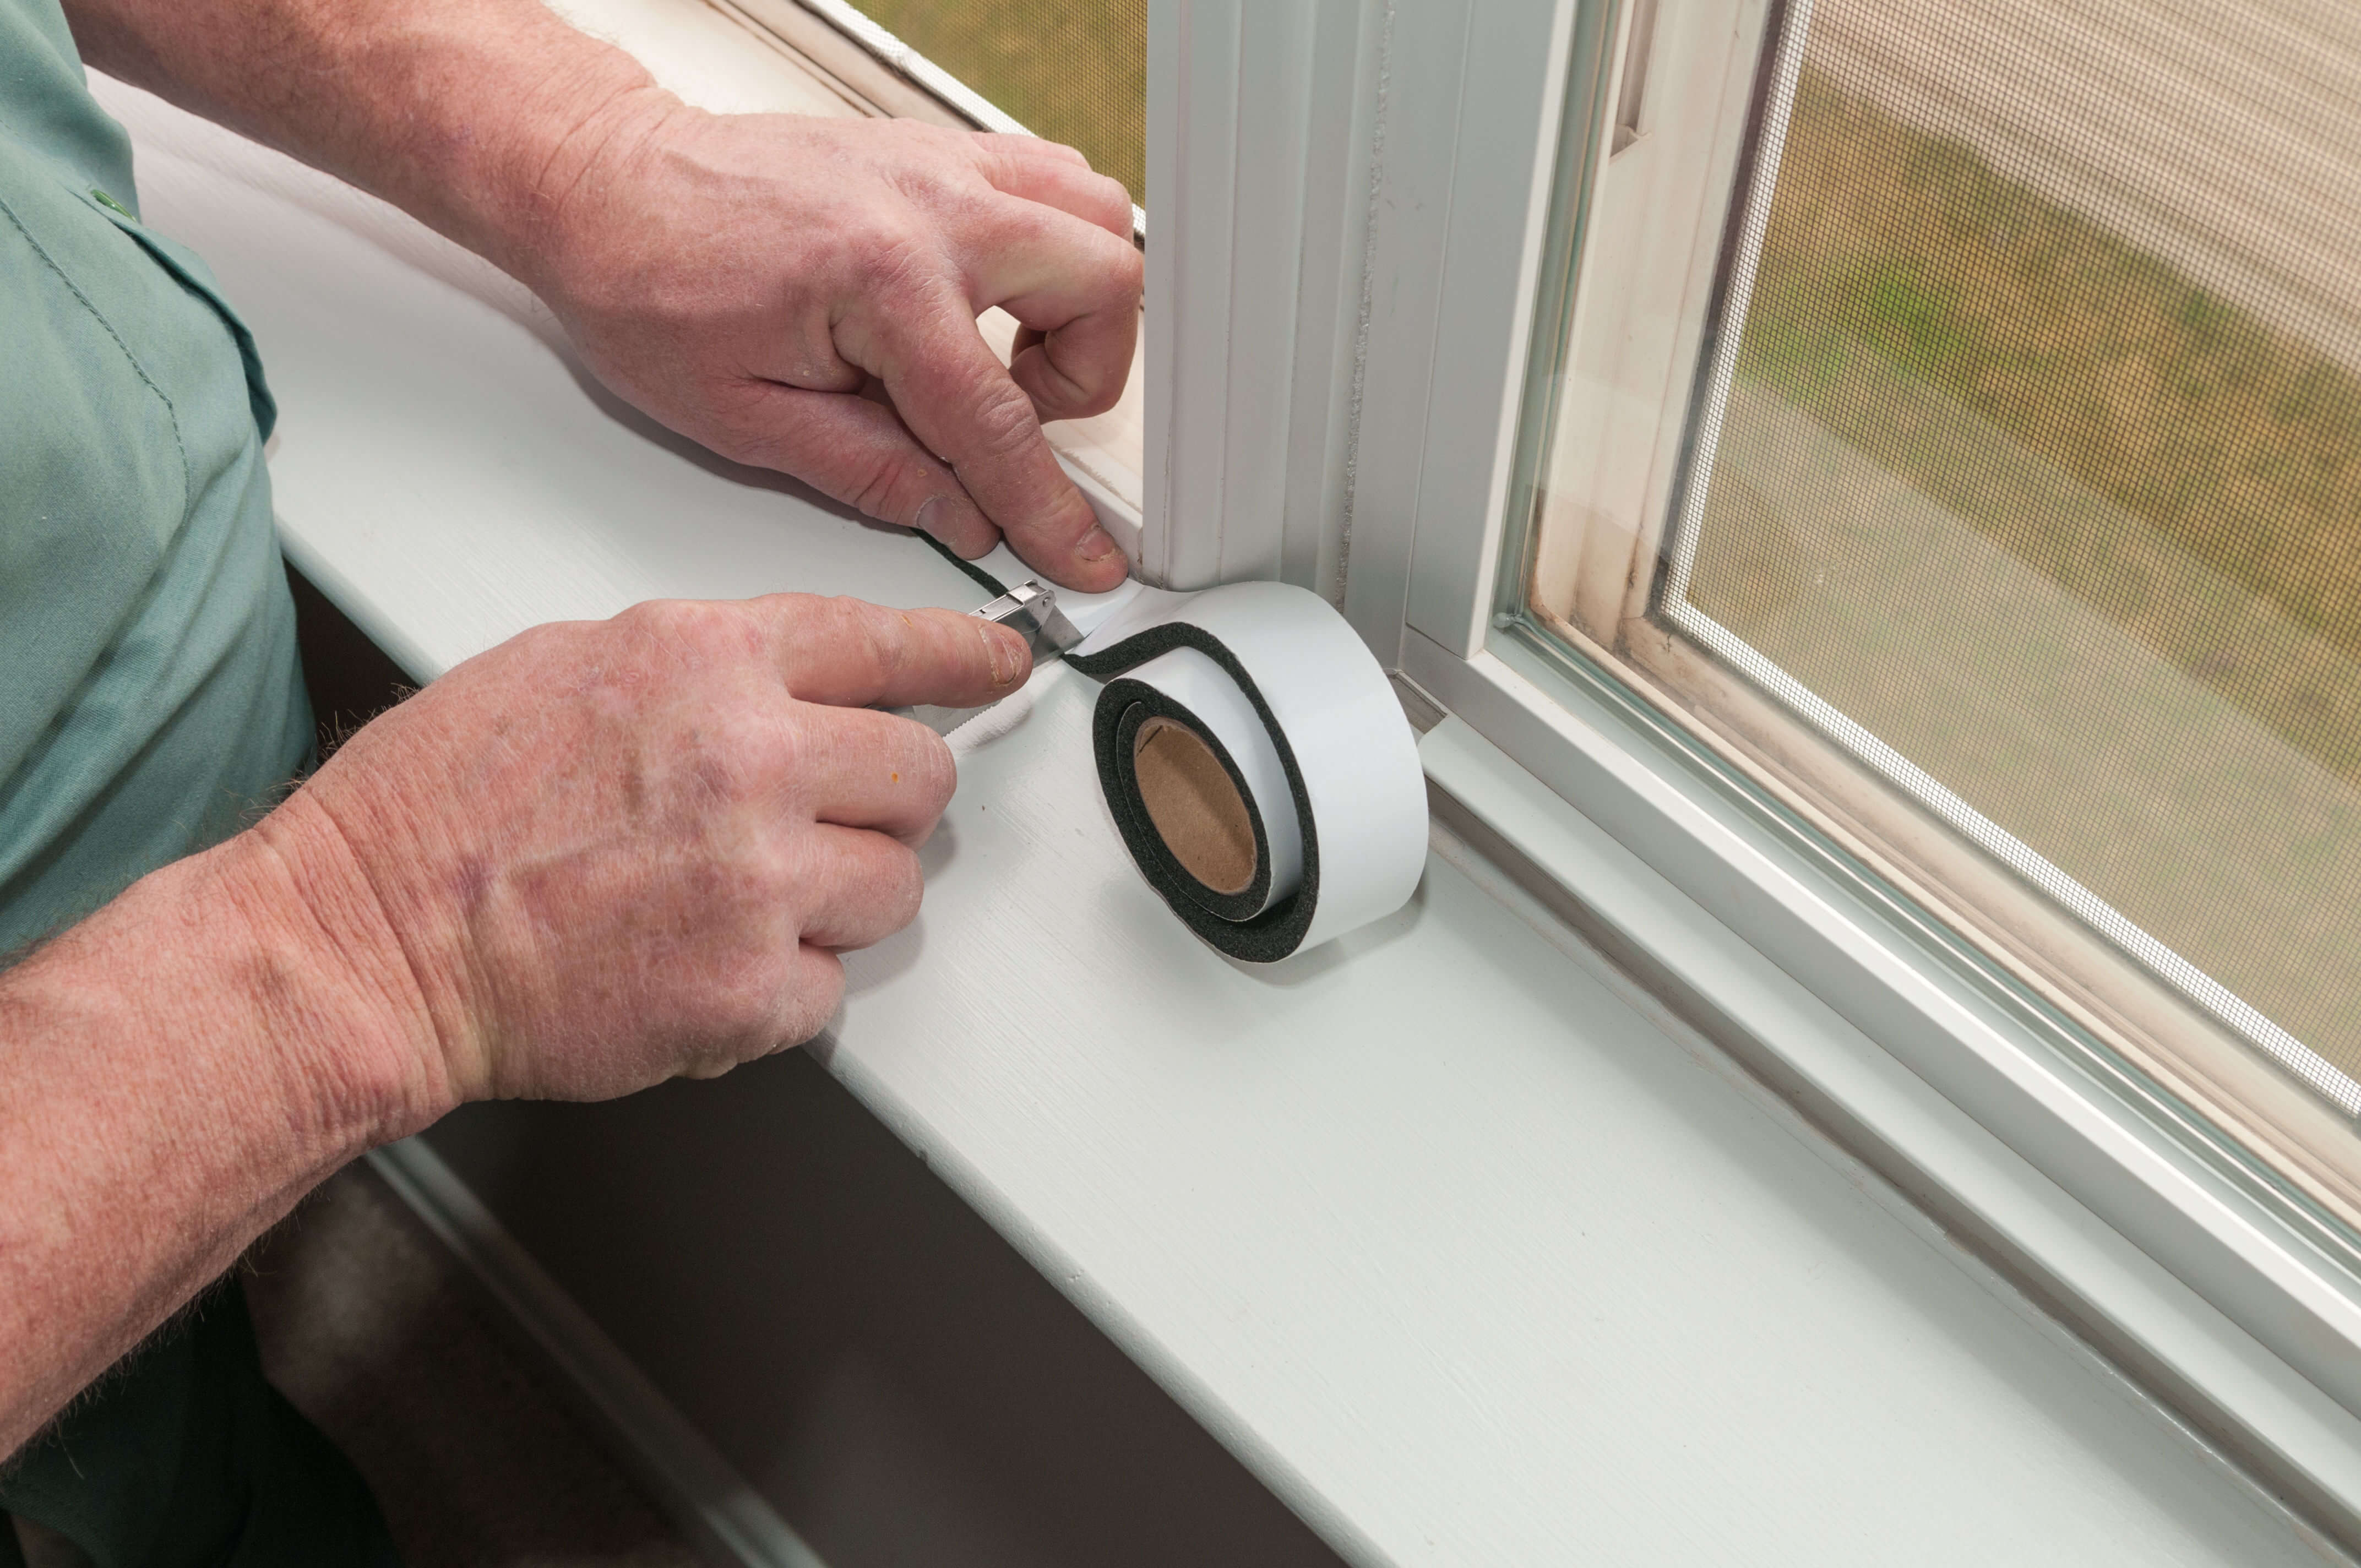 Weatherize your home doors and windows for maximum energy savings